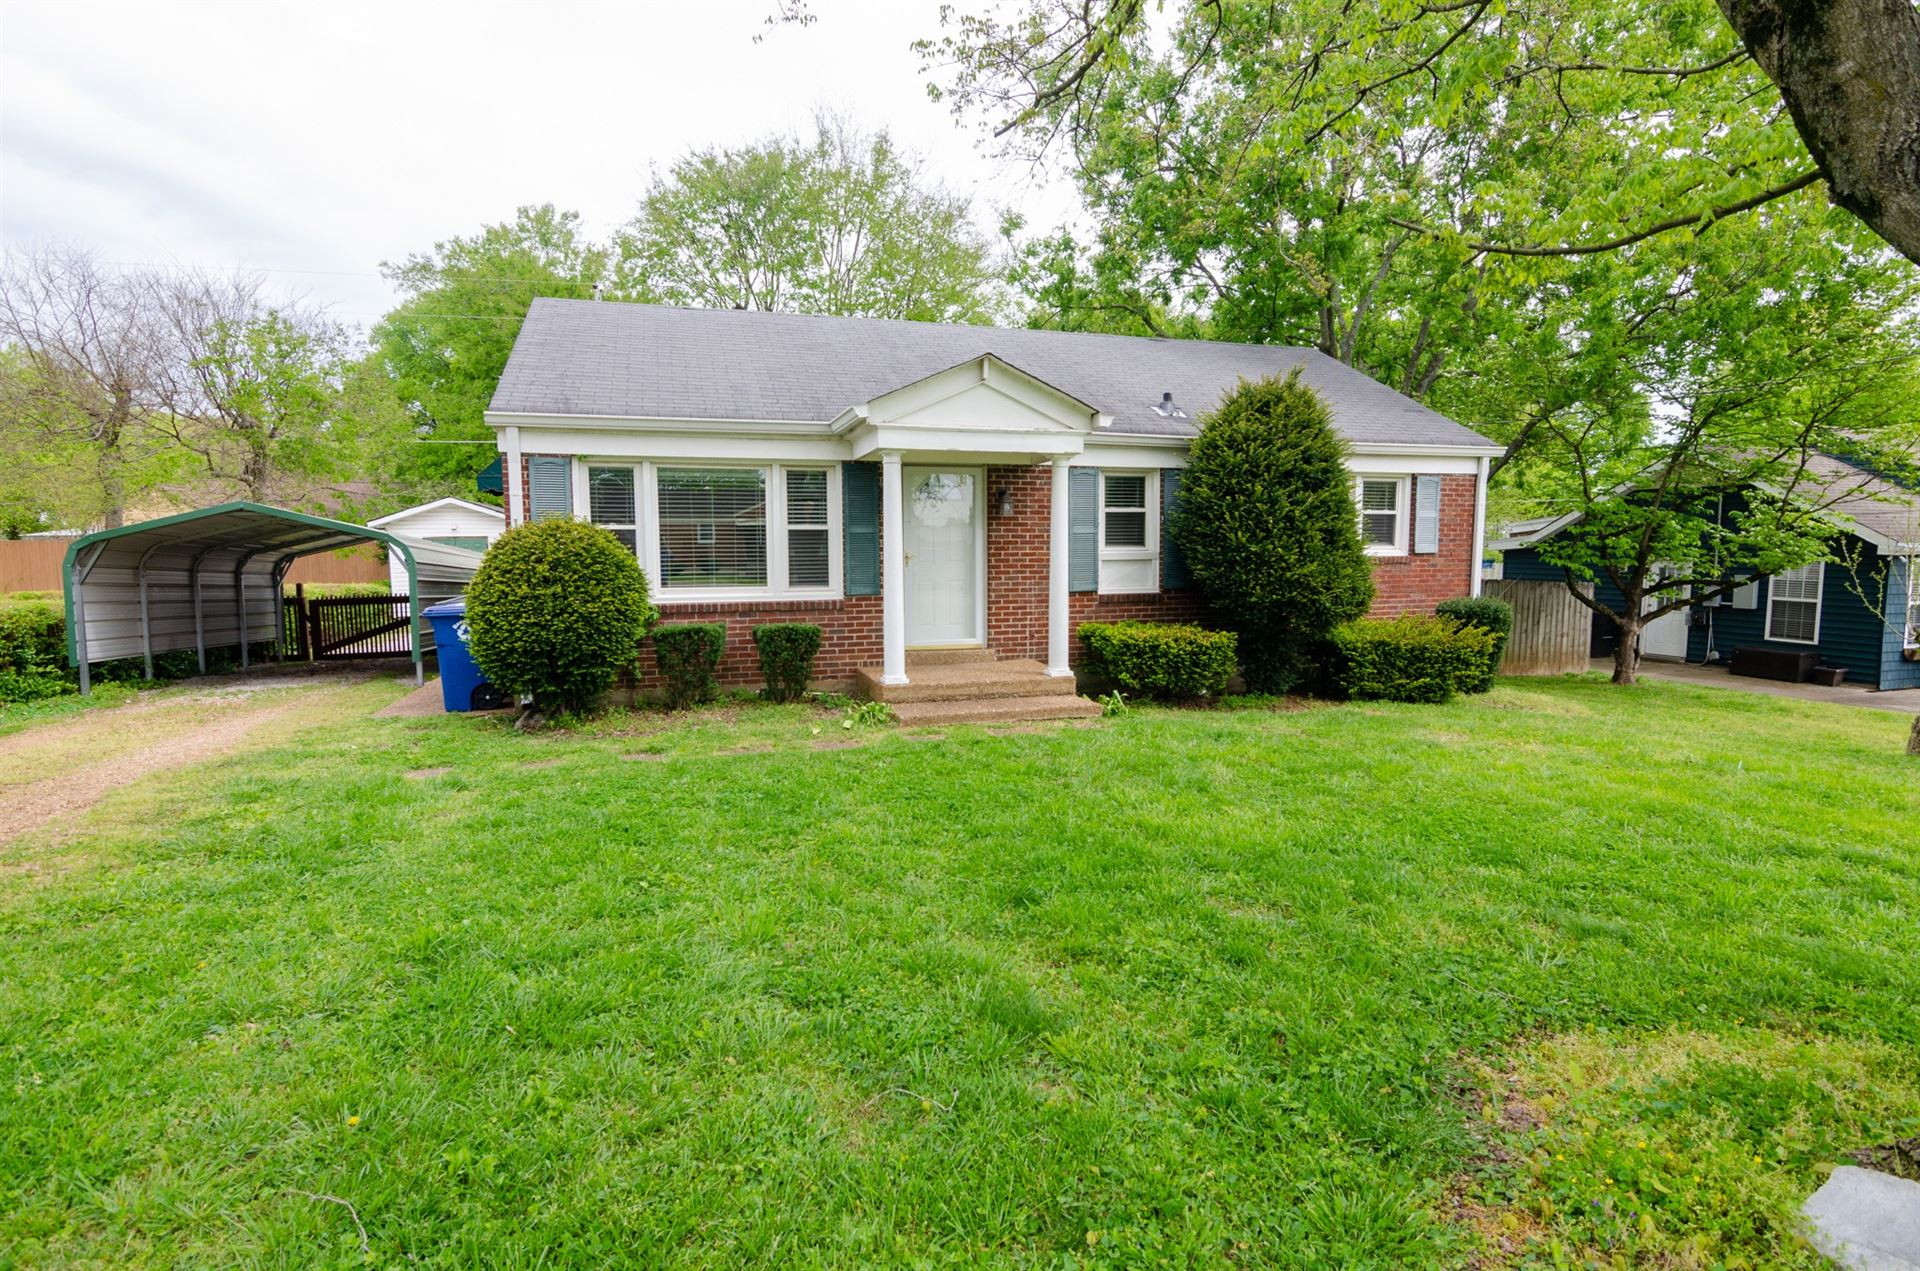 Photo of 307 James Ave, Franklin, TN 37064 (MLS # 2231165)